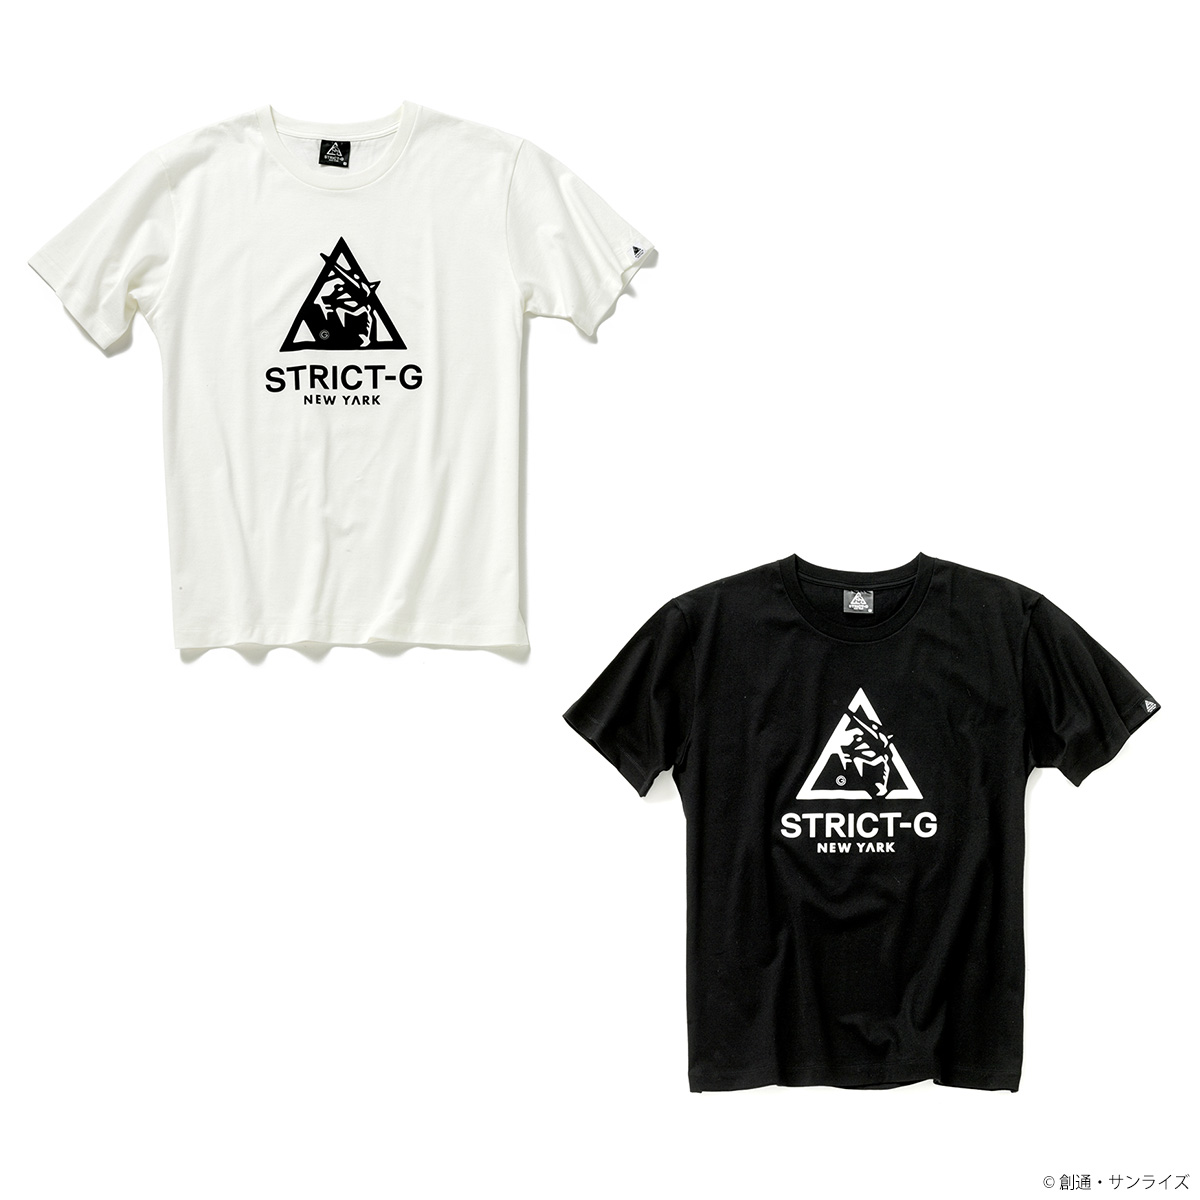 STRICT-G NEW YARK Tシャツ NYマーク柄